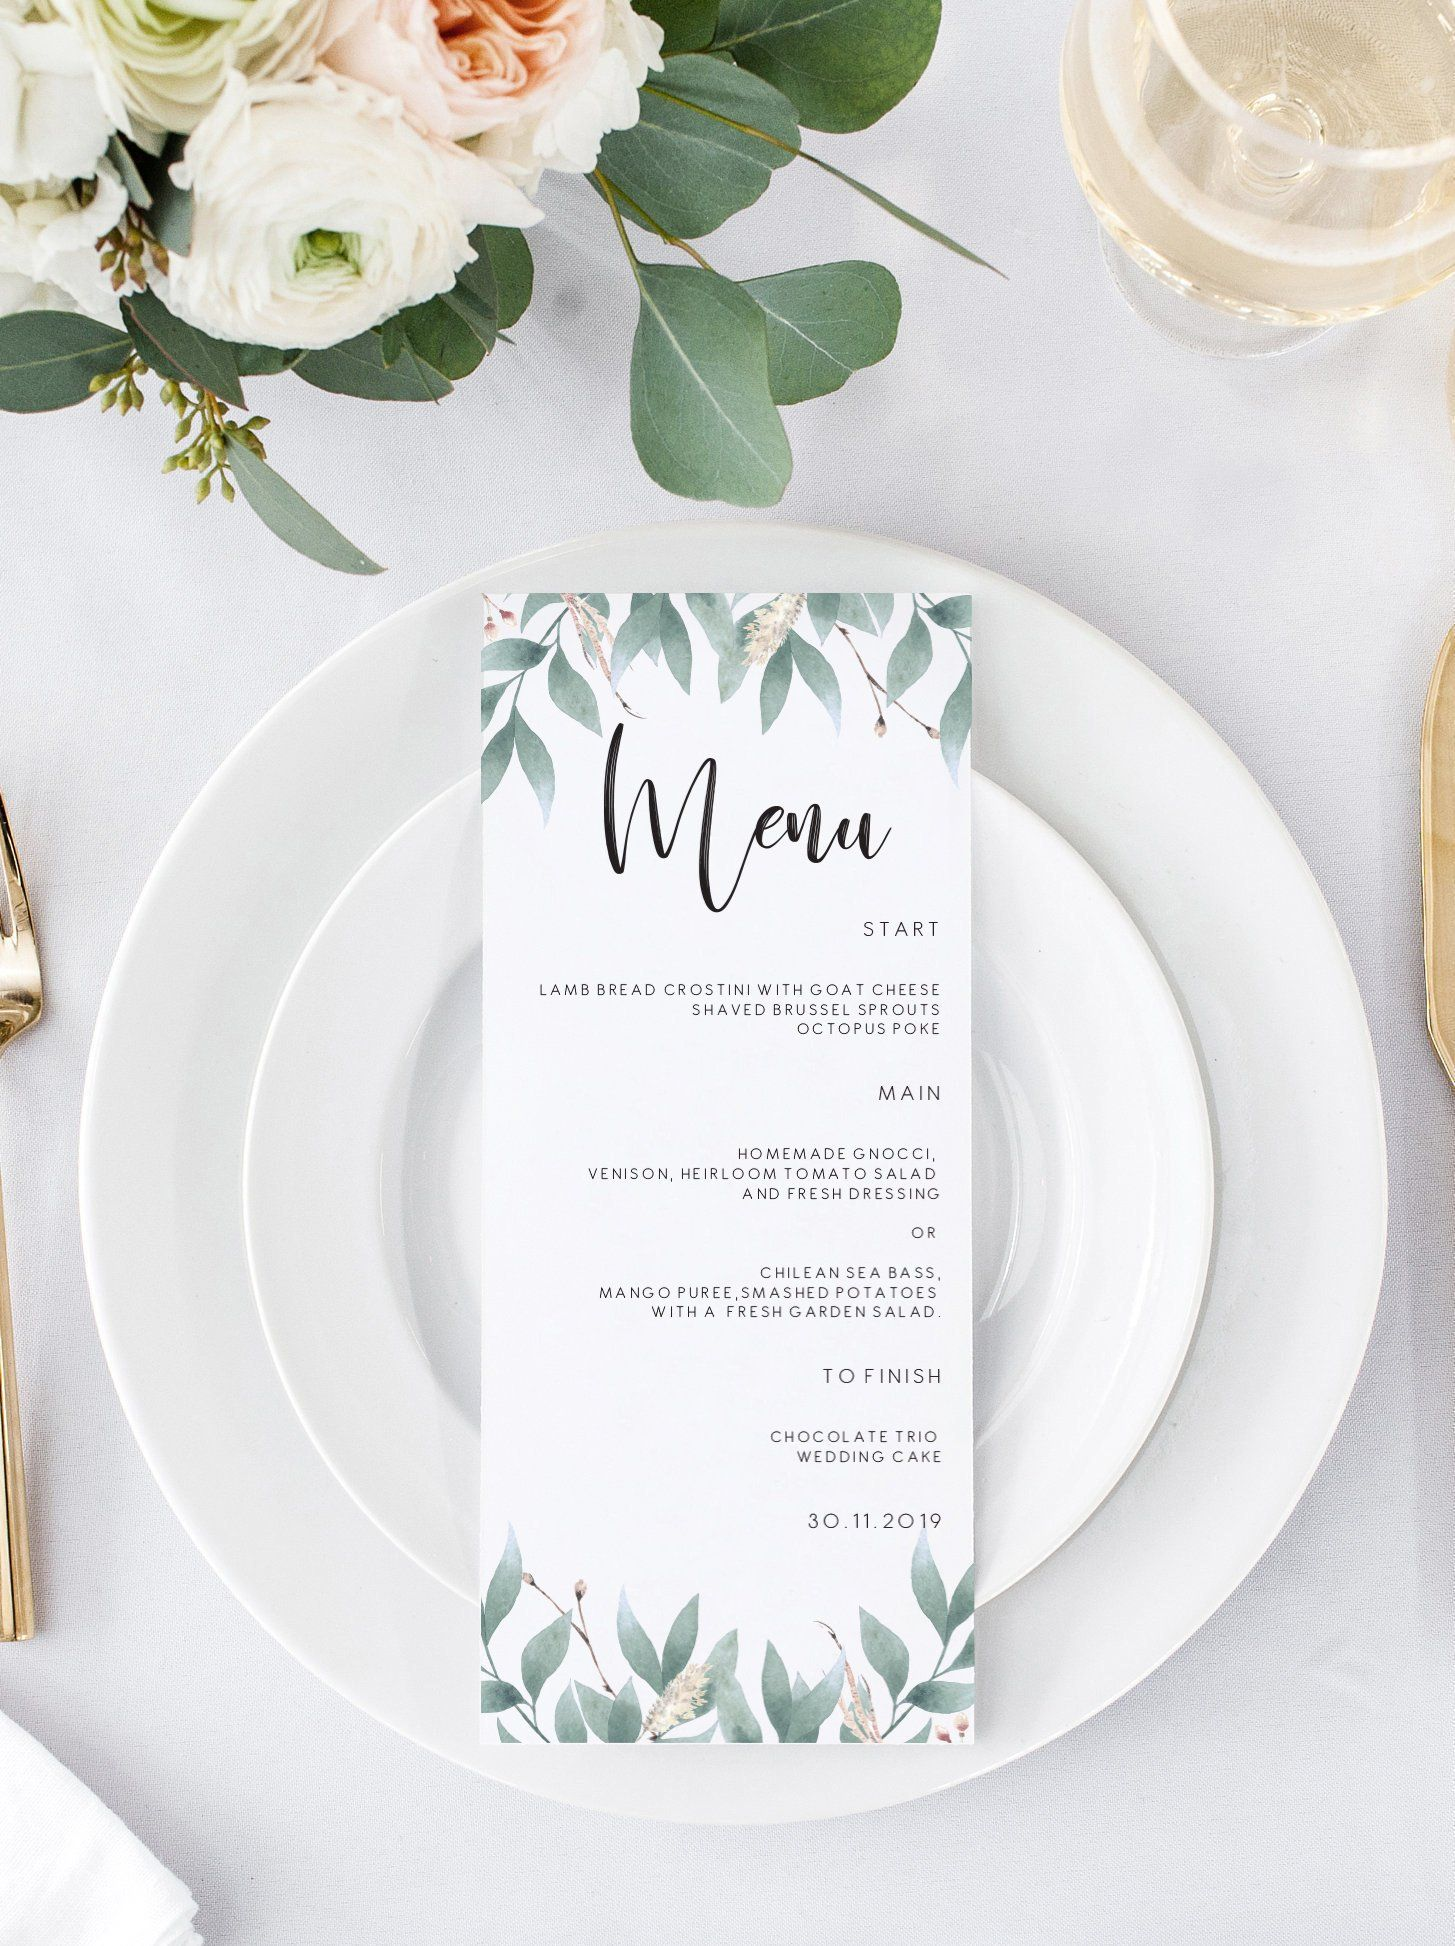 Editable Eucalyptus Wedding Menu card Greenery Wedding Menu Template Eucalyptus Menu Cards Menu Editable Menu Instant Download 103